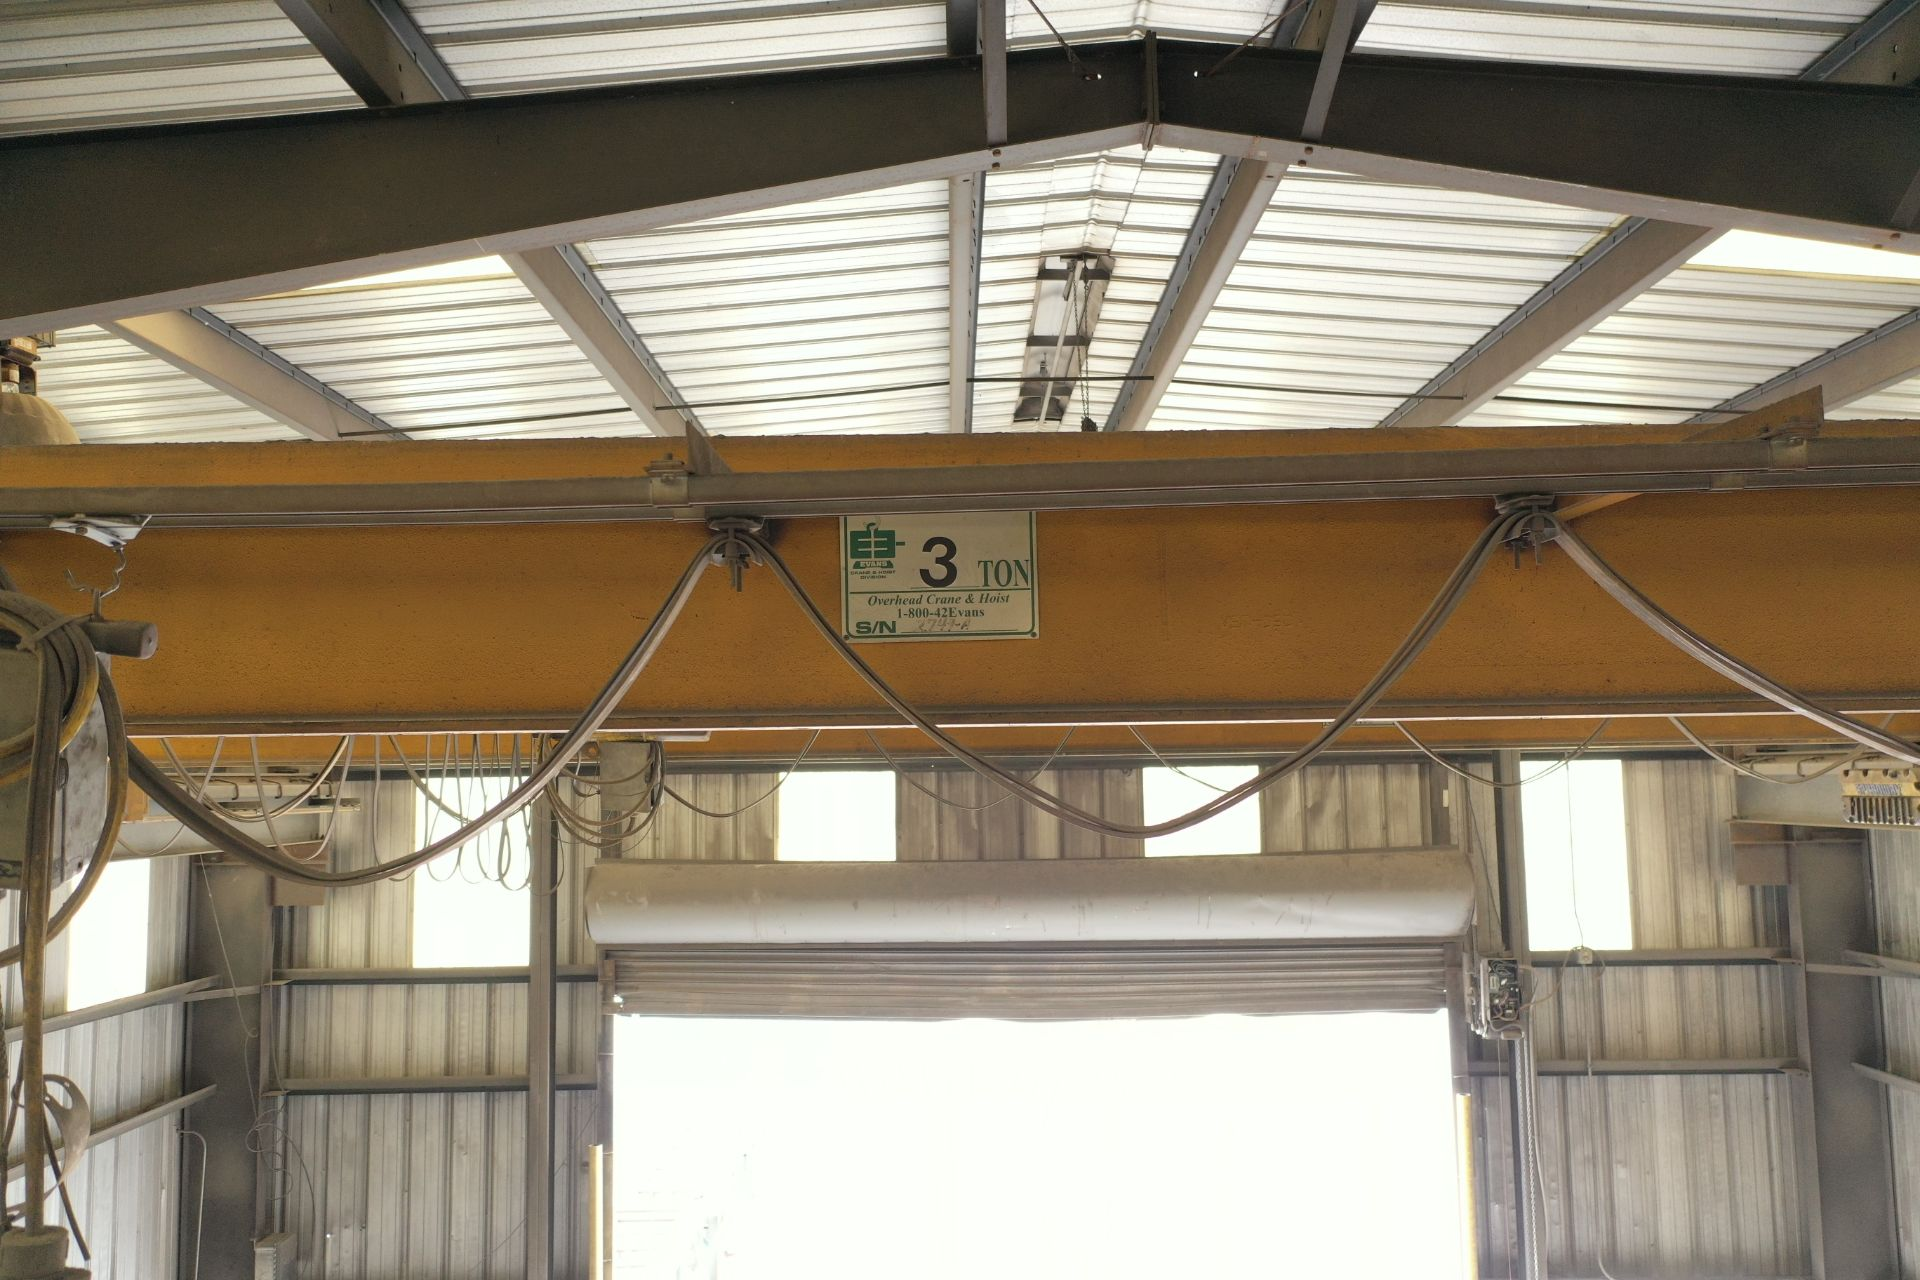 Lot 1 - Evans 3 Ton Overhead Crane SN: 2479A with 3 Ton Hoist & Pendant Control, Approx 40 ft Span (LOCATION